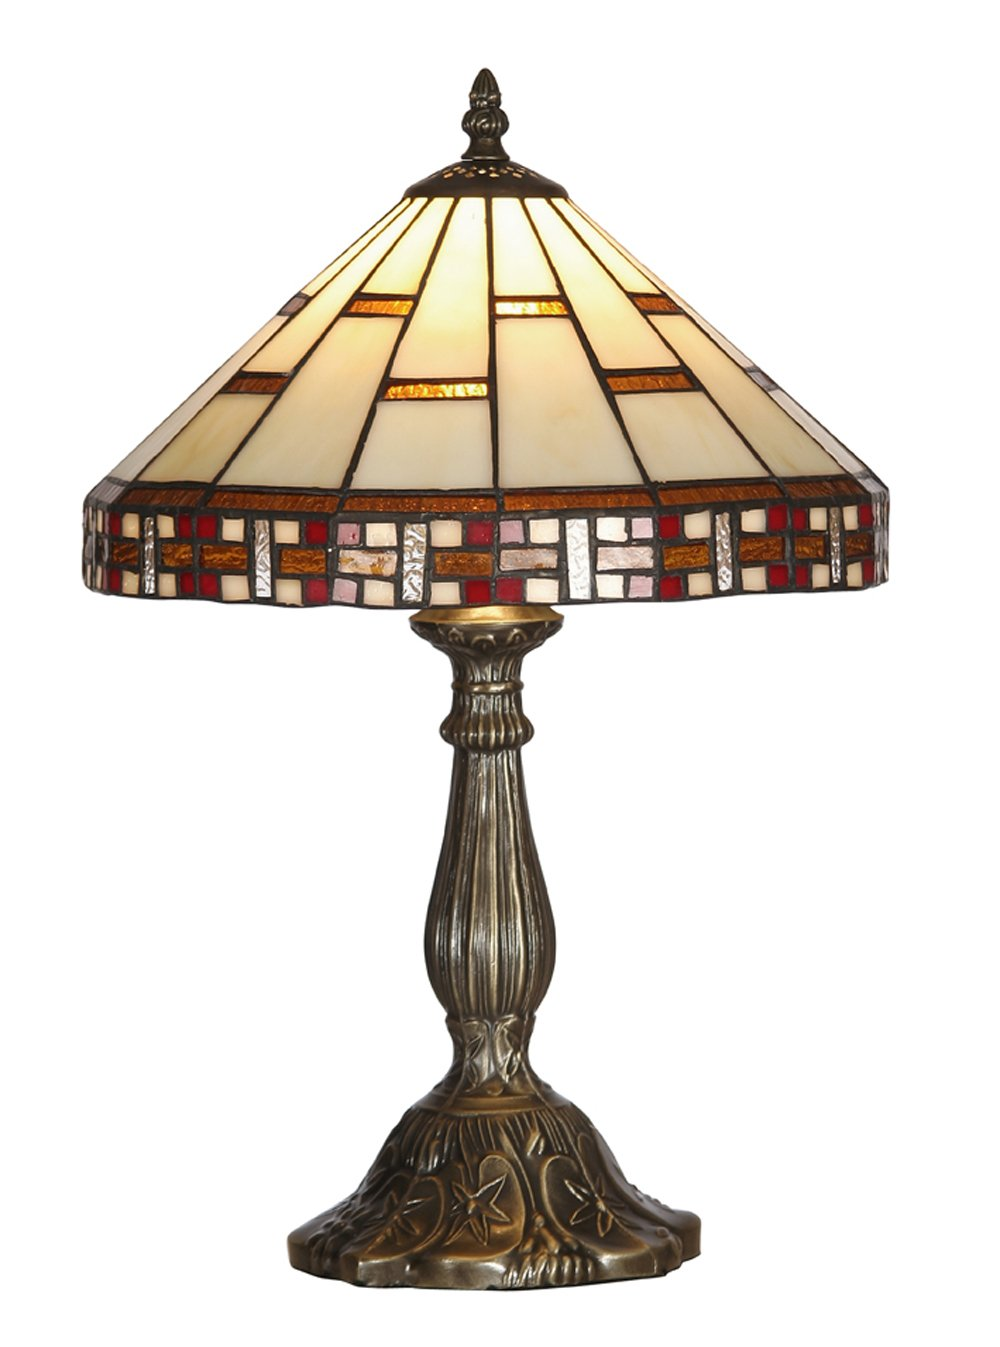 Aremisia Tiffany Table Lamp       Customer reviews and more information